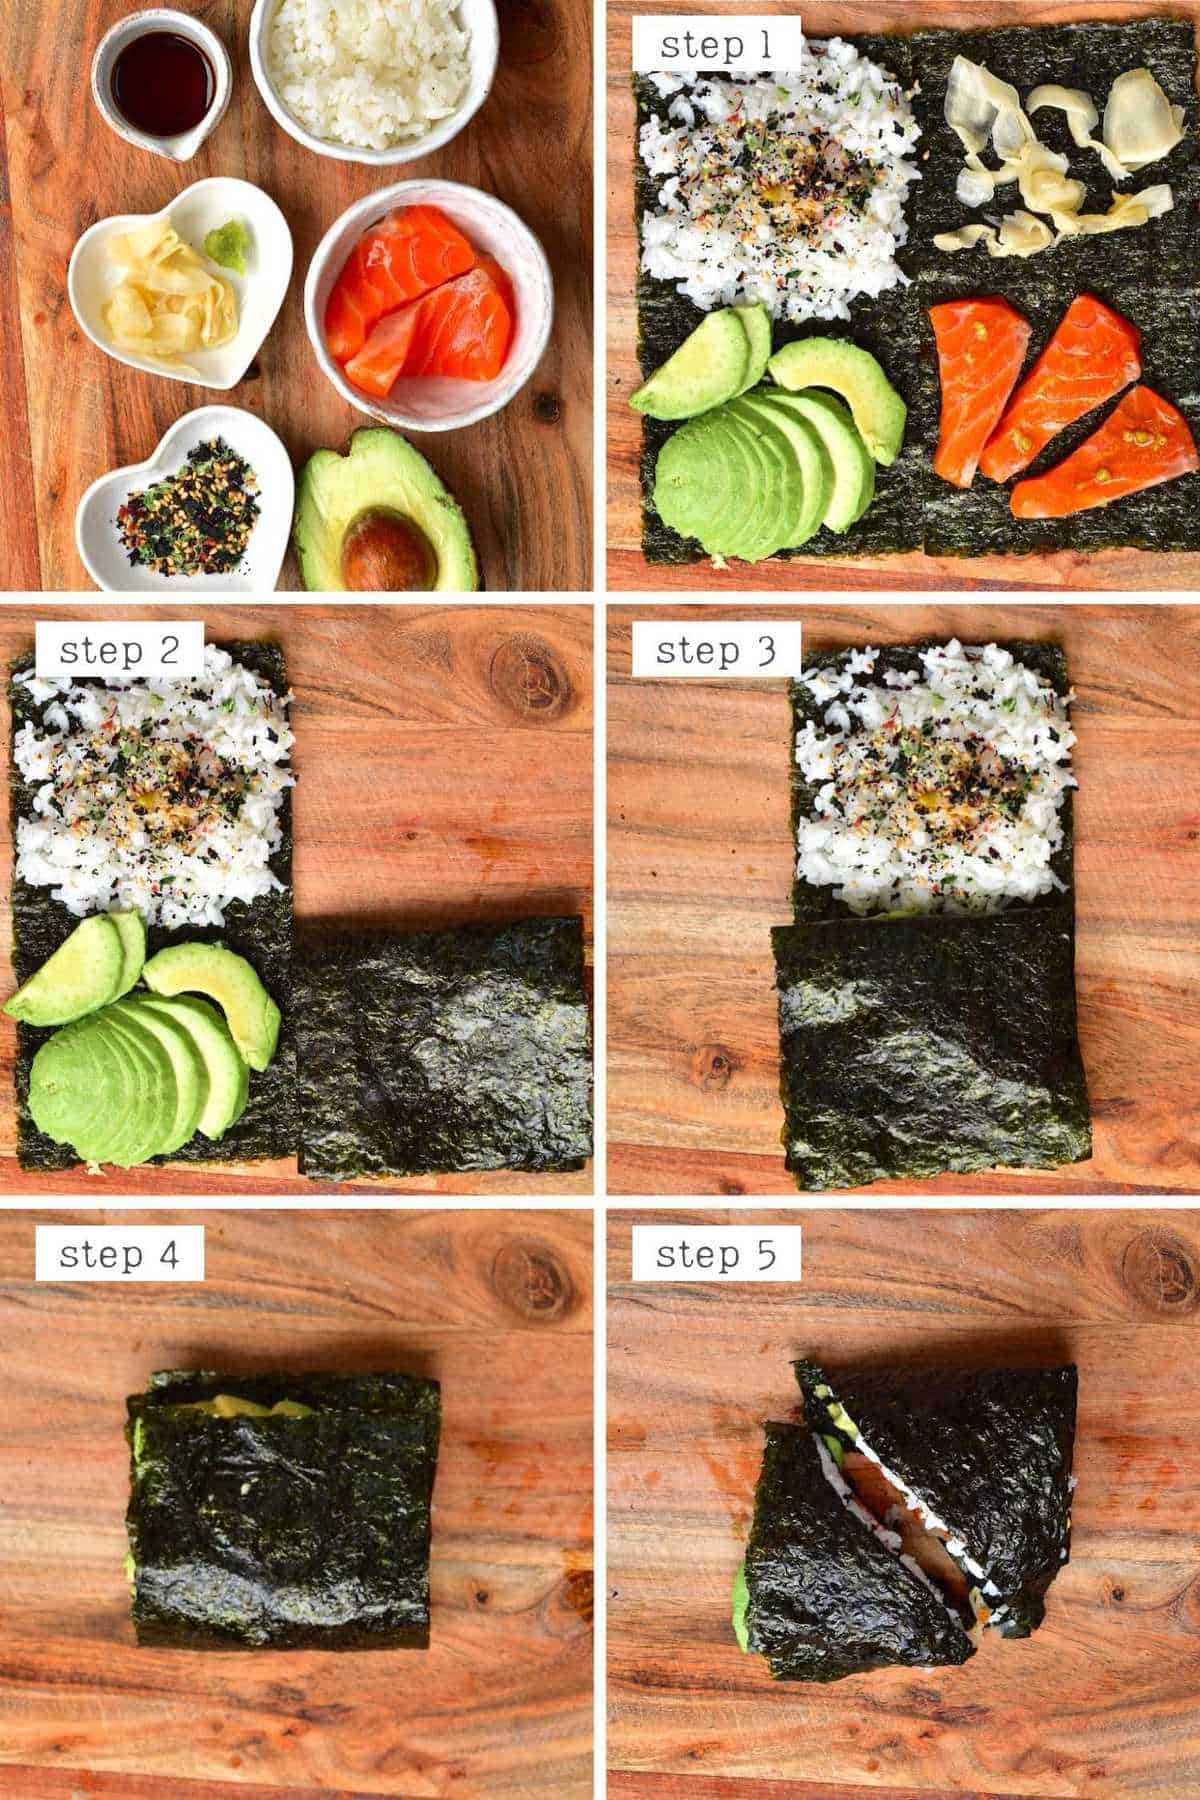 Steps for making sushi wrap using viral wrap trend